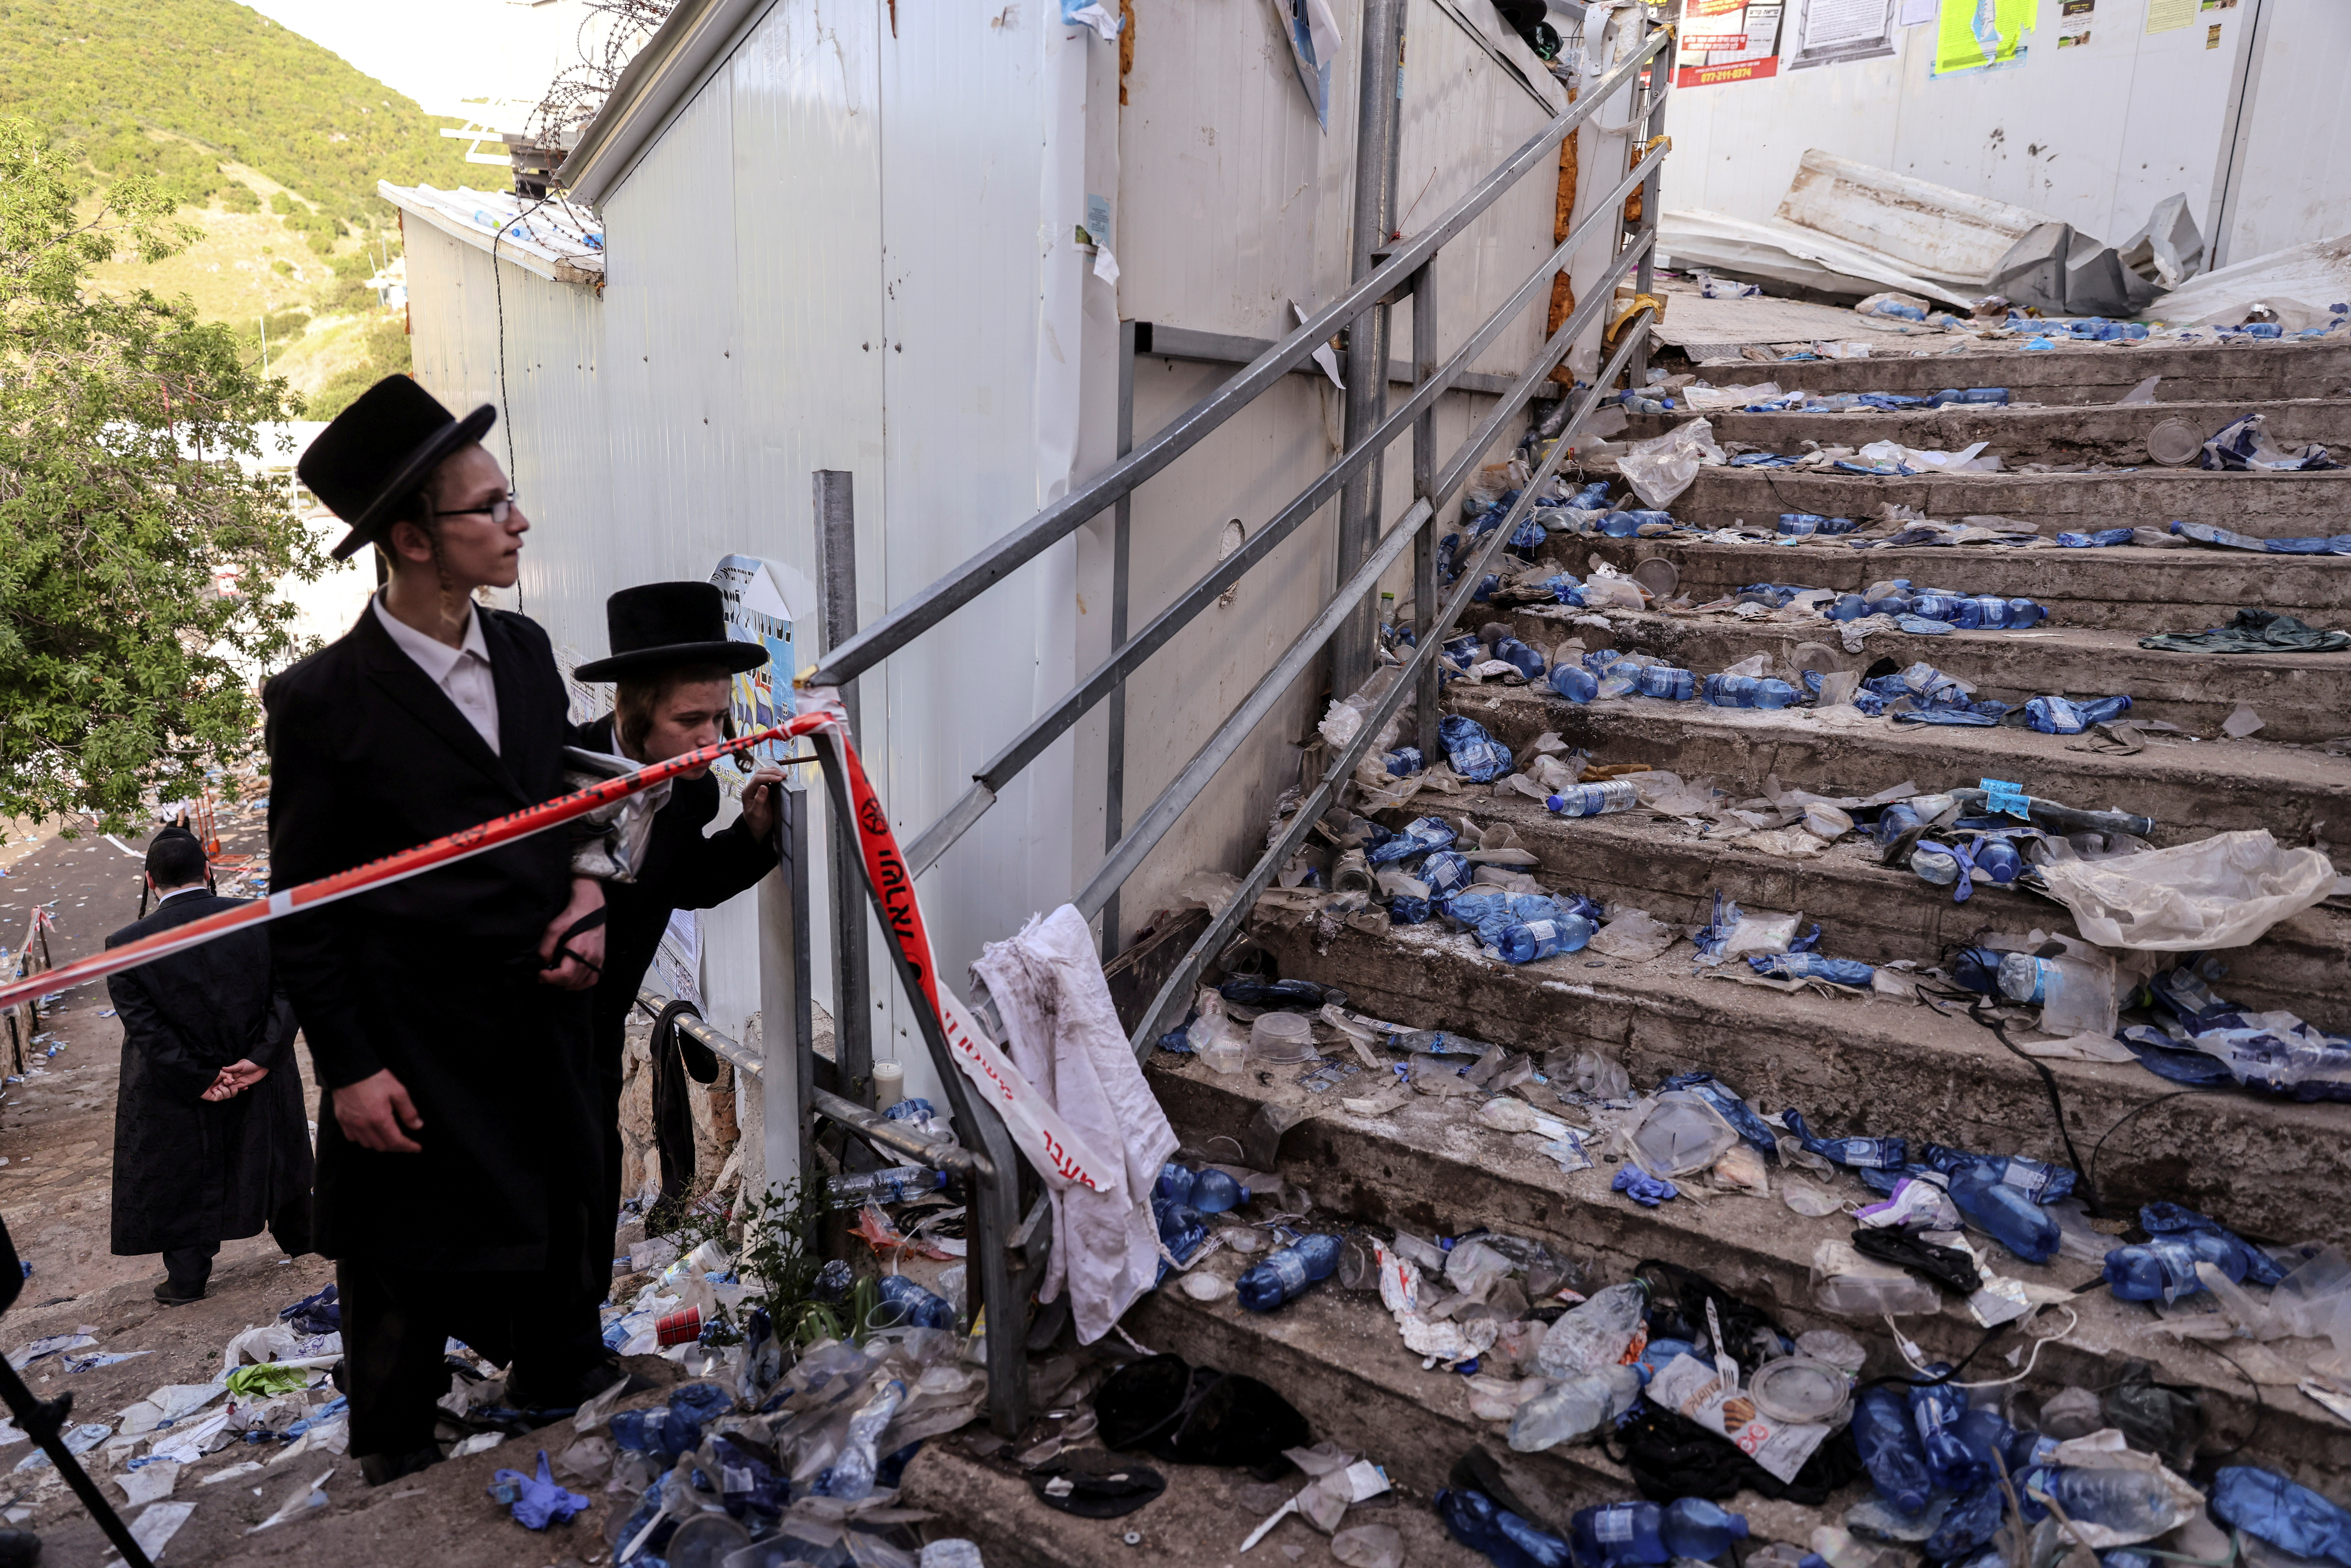 Ultra Orthodox Jews look at stairs with waste on it in Mount Meron, northern Israel, where fatalities were reported among the thousands of ultra-Orthodox Jews gathered at the tomb of a 2nd-century sage for annual commemorations that include all-night prayer and dance, April 30, 2021. REUTERS/ Ronen Zvulun